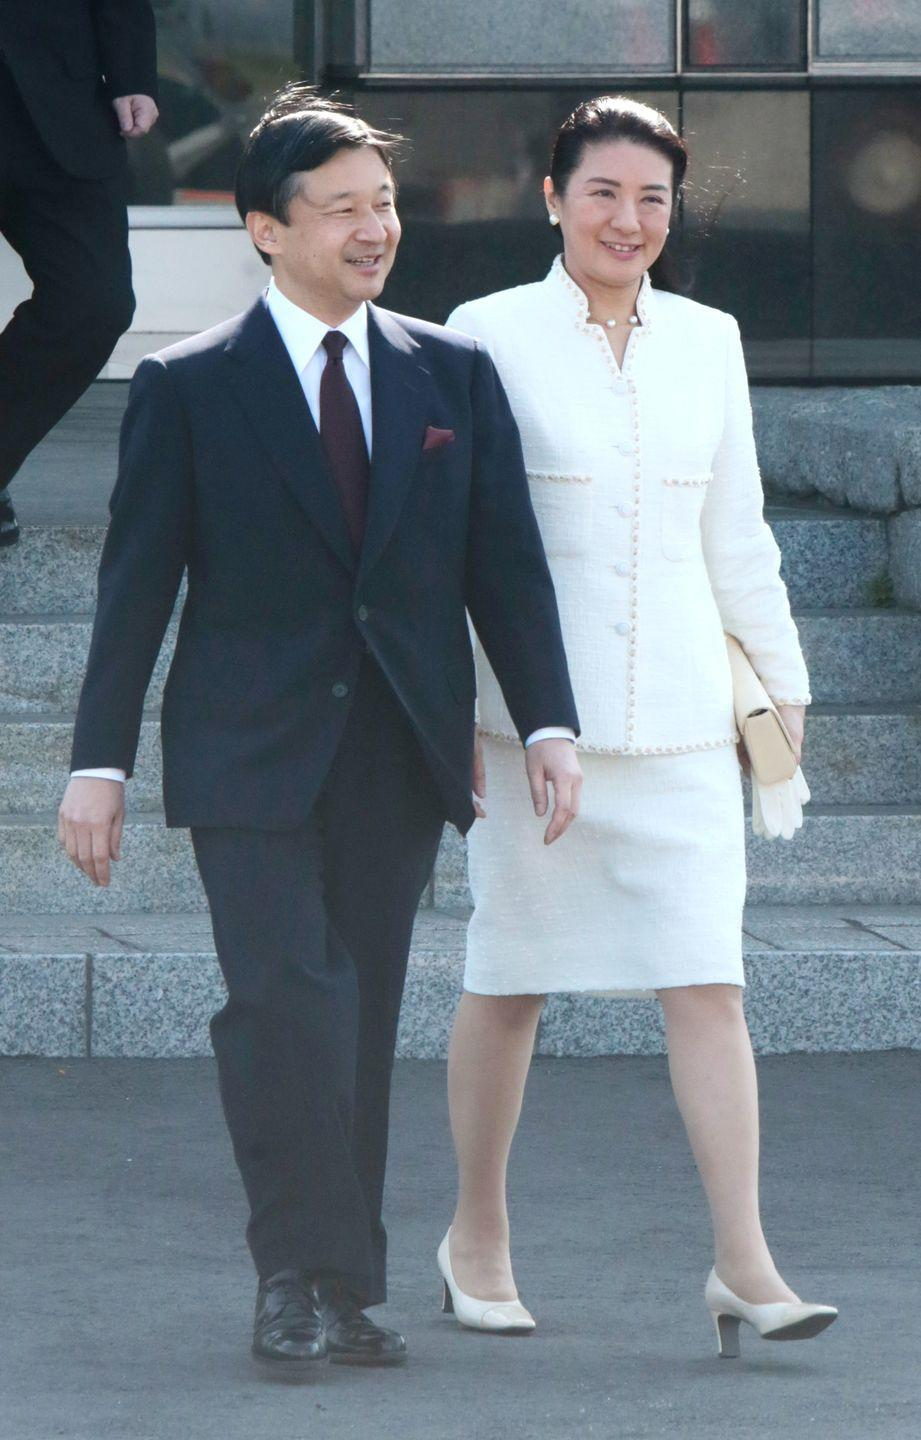 <p>Before she became Crown Princess of Japan, she was a Harvard graduate who went on to pursue a diplomatic career, which led her to Crown Prince Naruhito. He courted her for years, and she finally accepted on the third proposal. The couple, who wed in 1993, are set to become emperor and empress of Japan in 2019. </p>